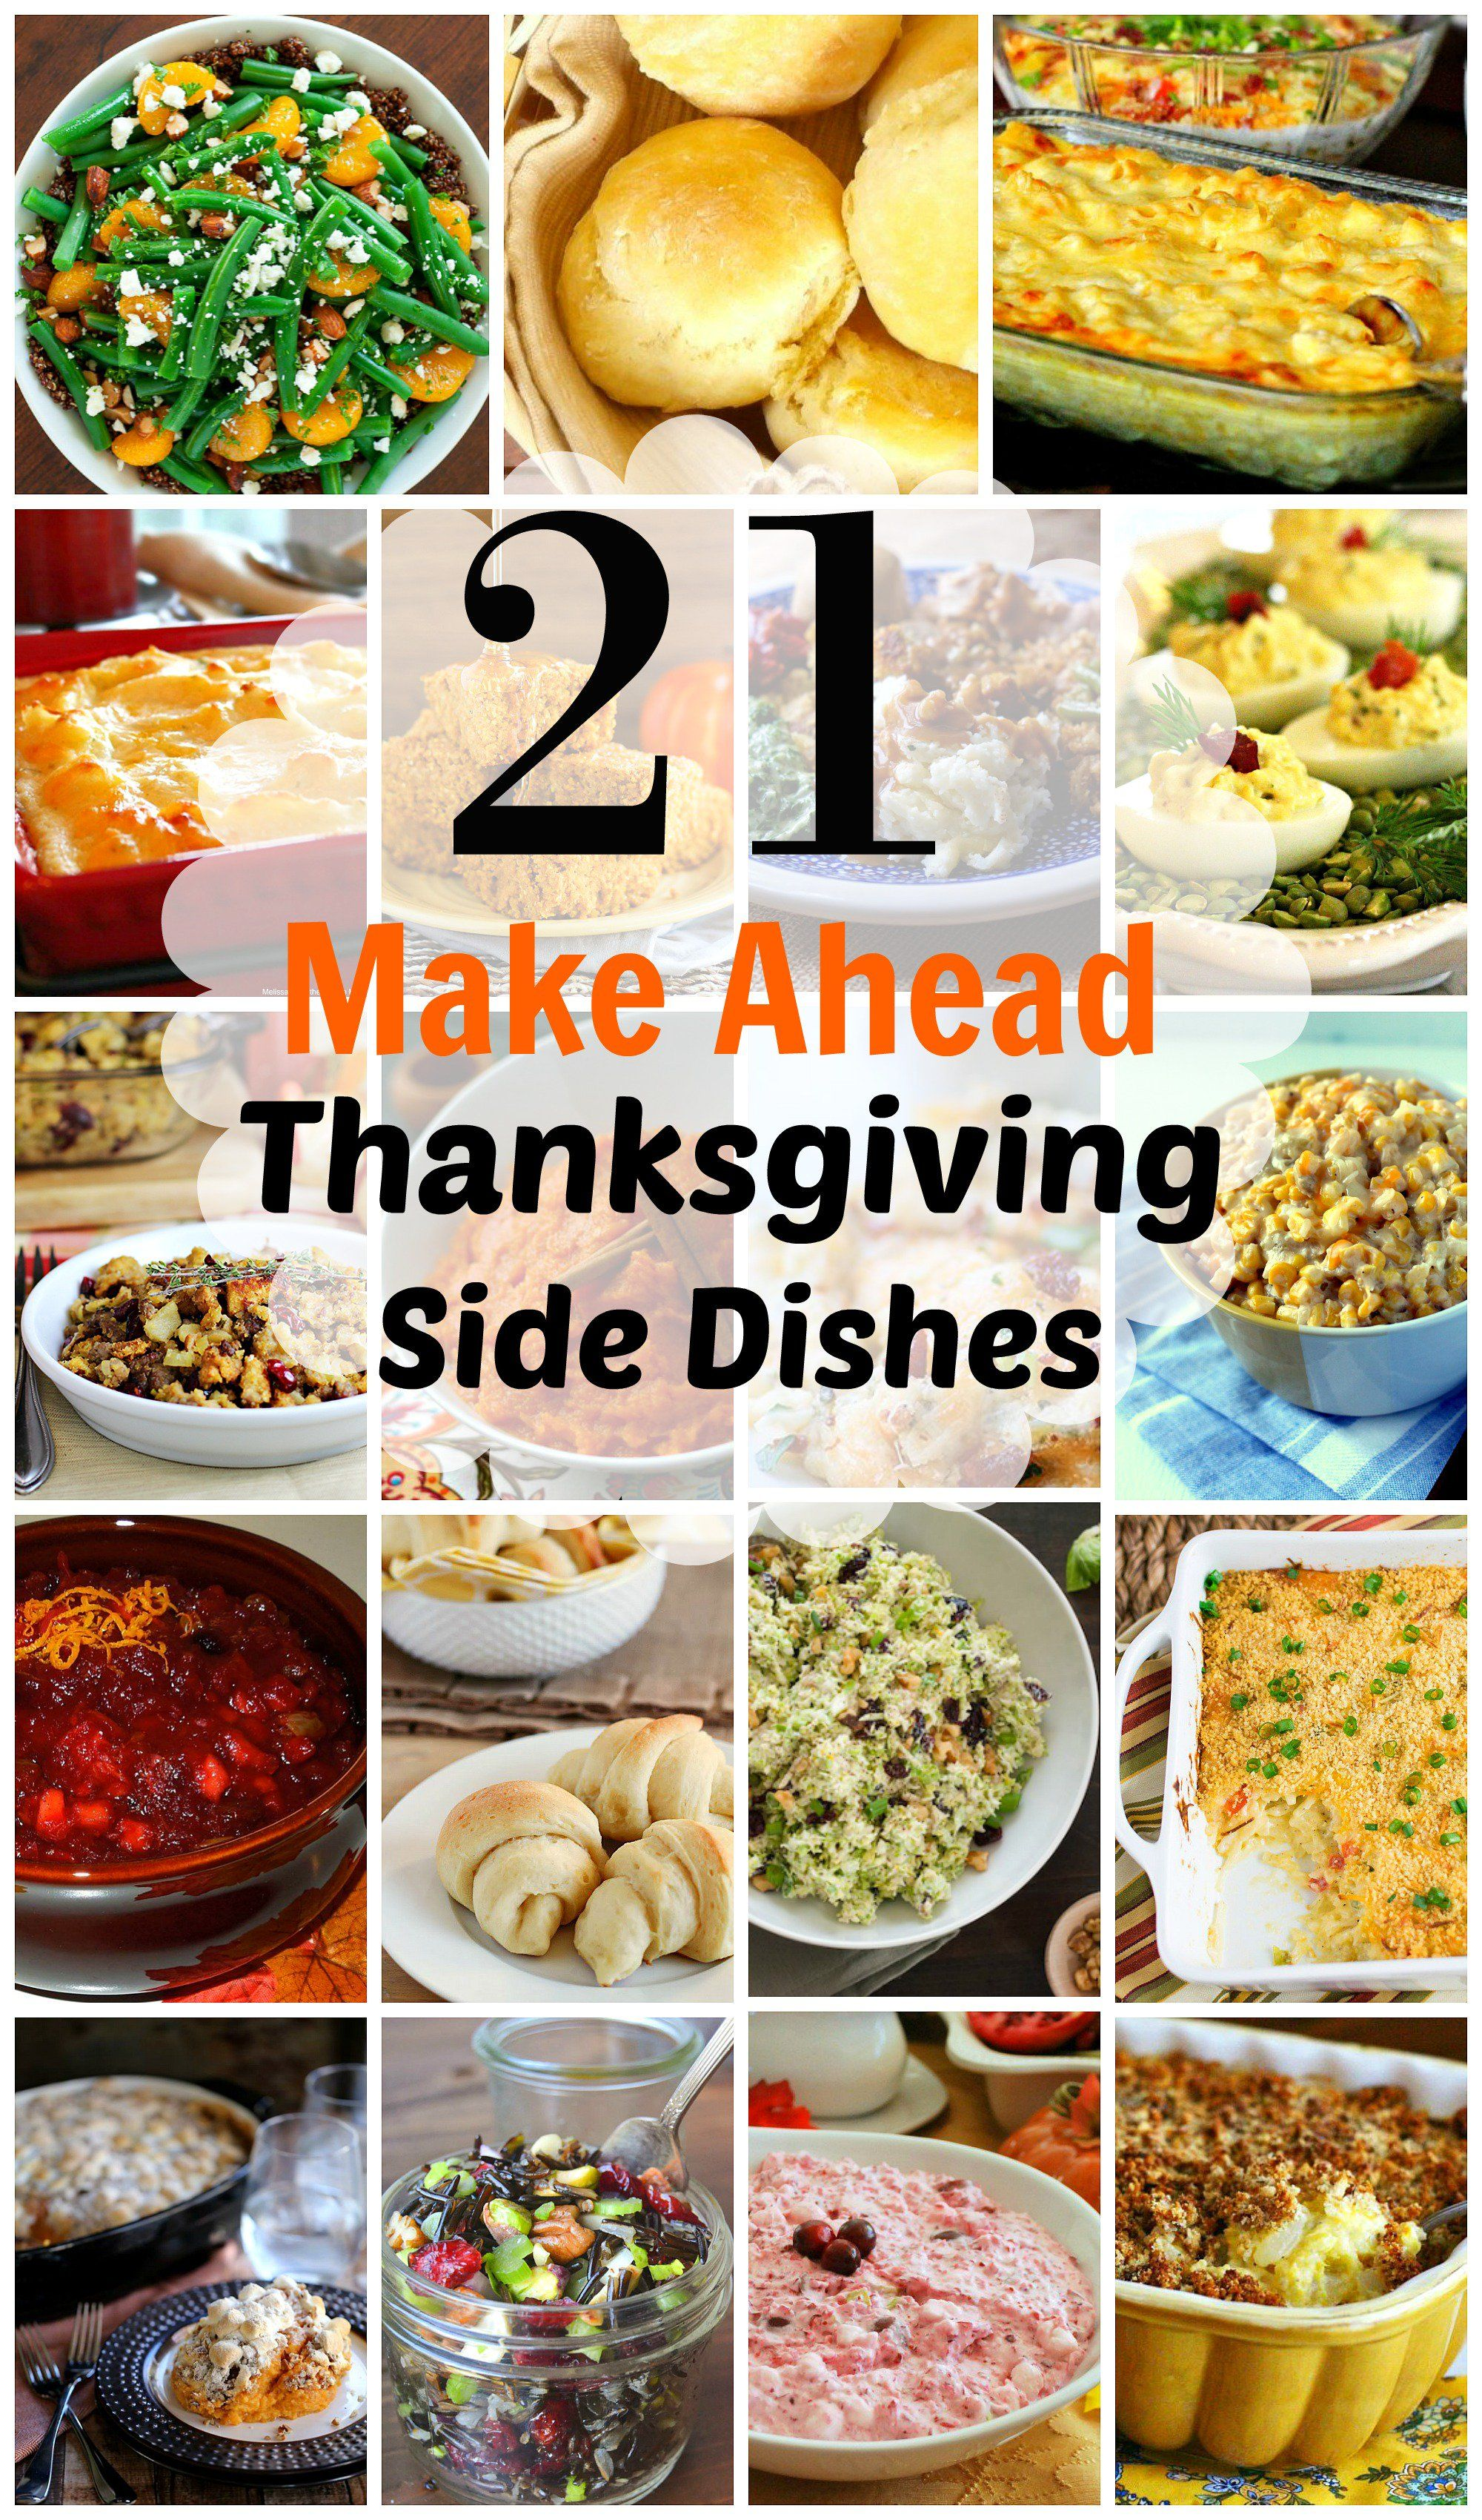 21 Spectacular Make-Ahead Thanksgiving Side Dishes #thanksgivingrecipessidedishes